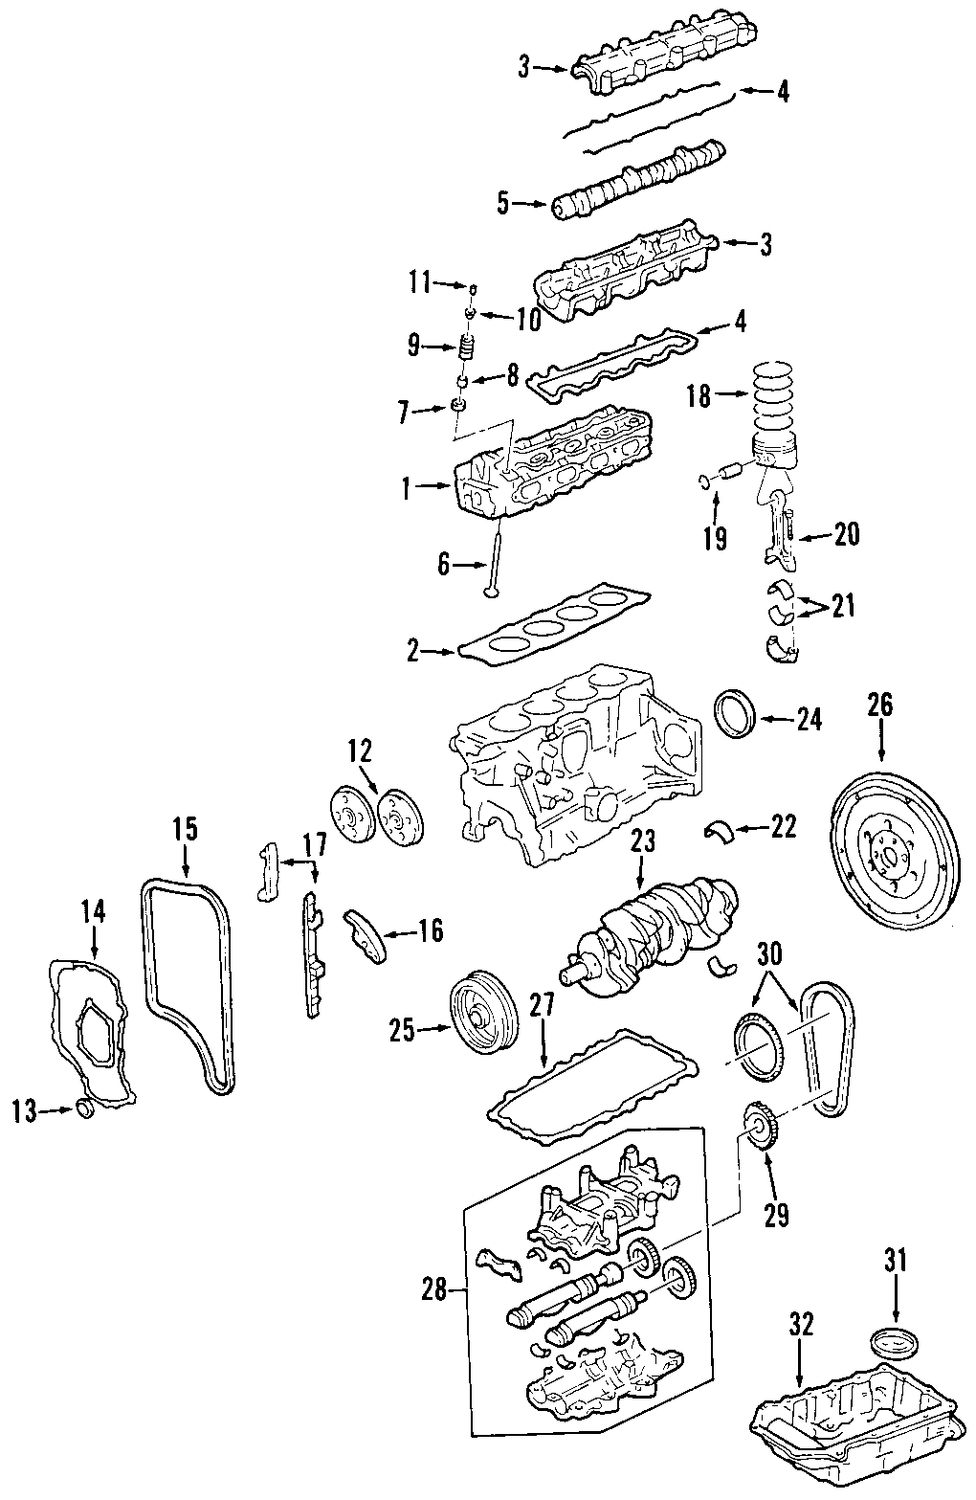 Browse A Sub Category To Buy Parts From Alero Engine Diagram Genuine Chevrolet Vibration Damper Che 24575562